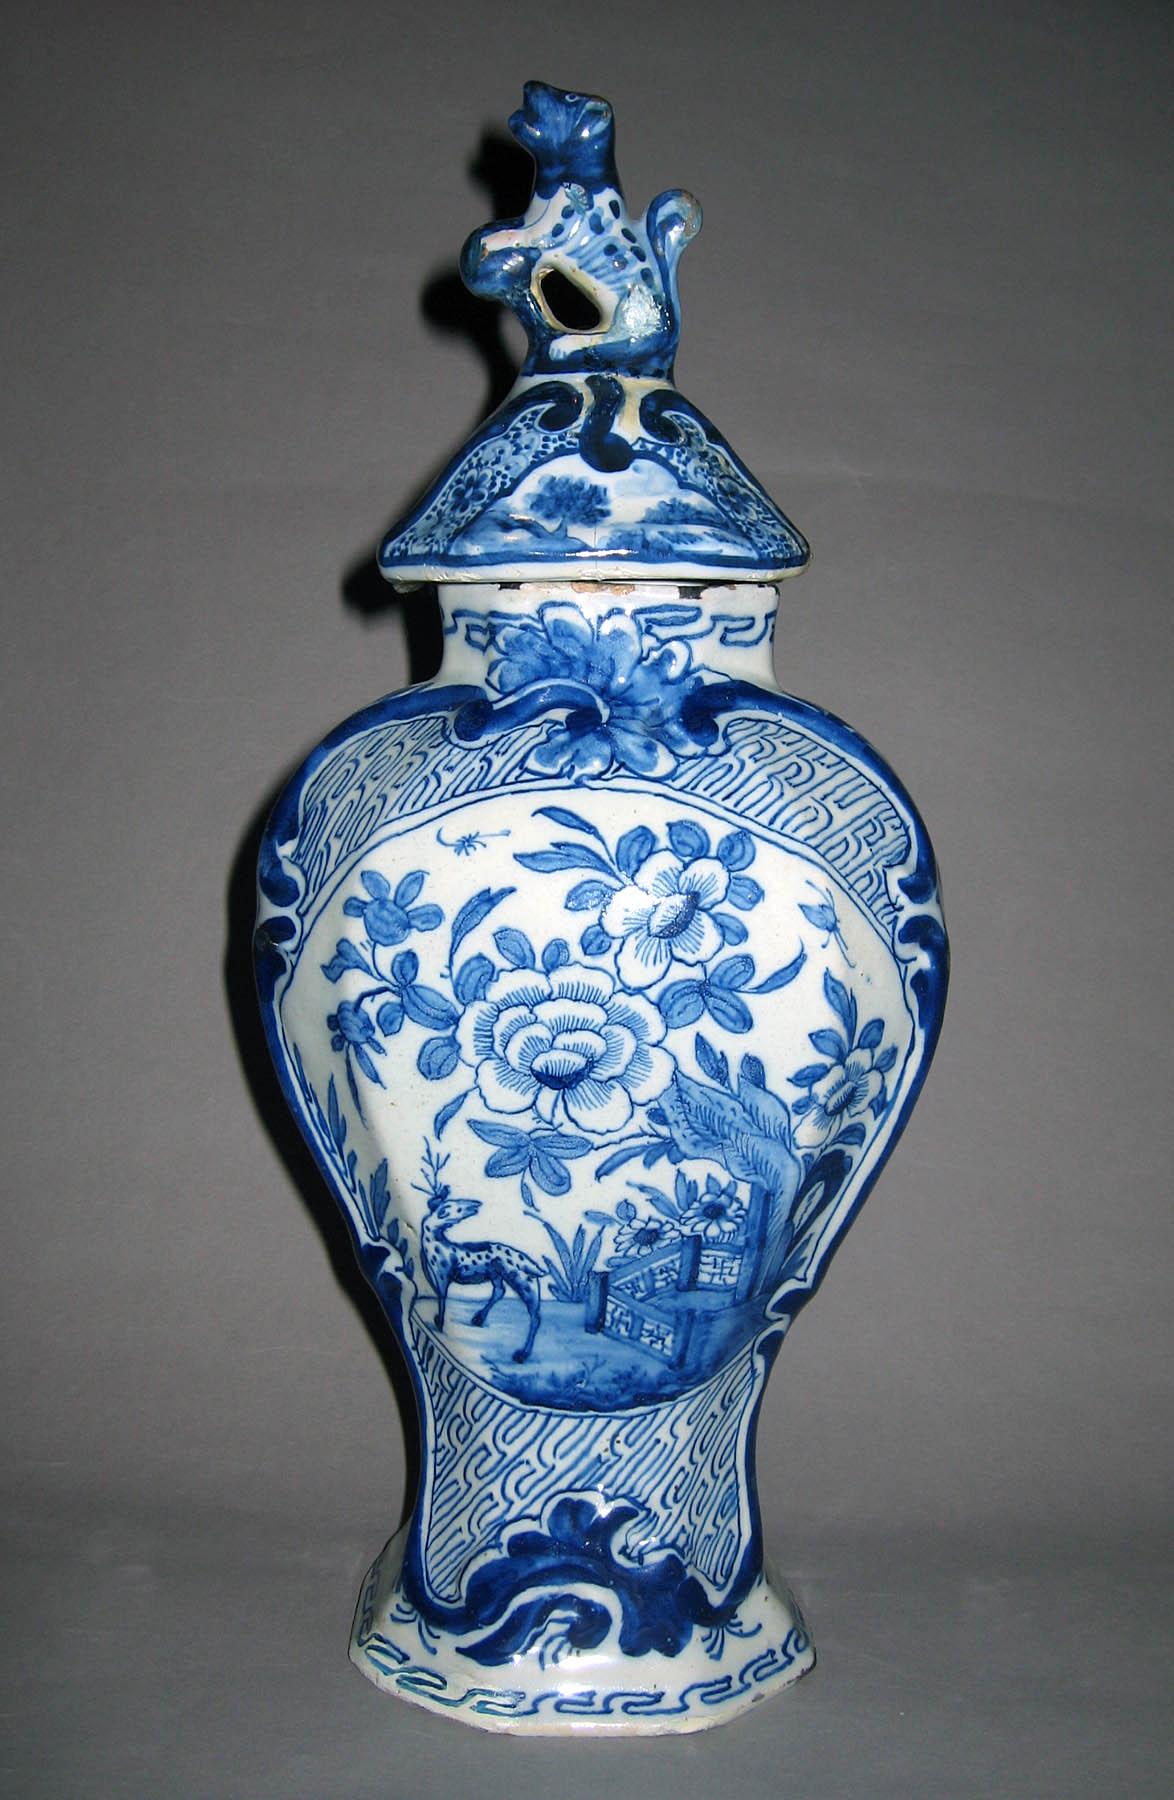 1960.0084.005 A, B Delft covered vase